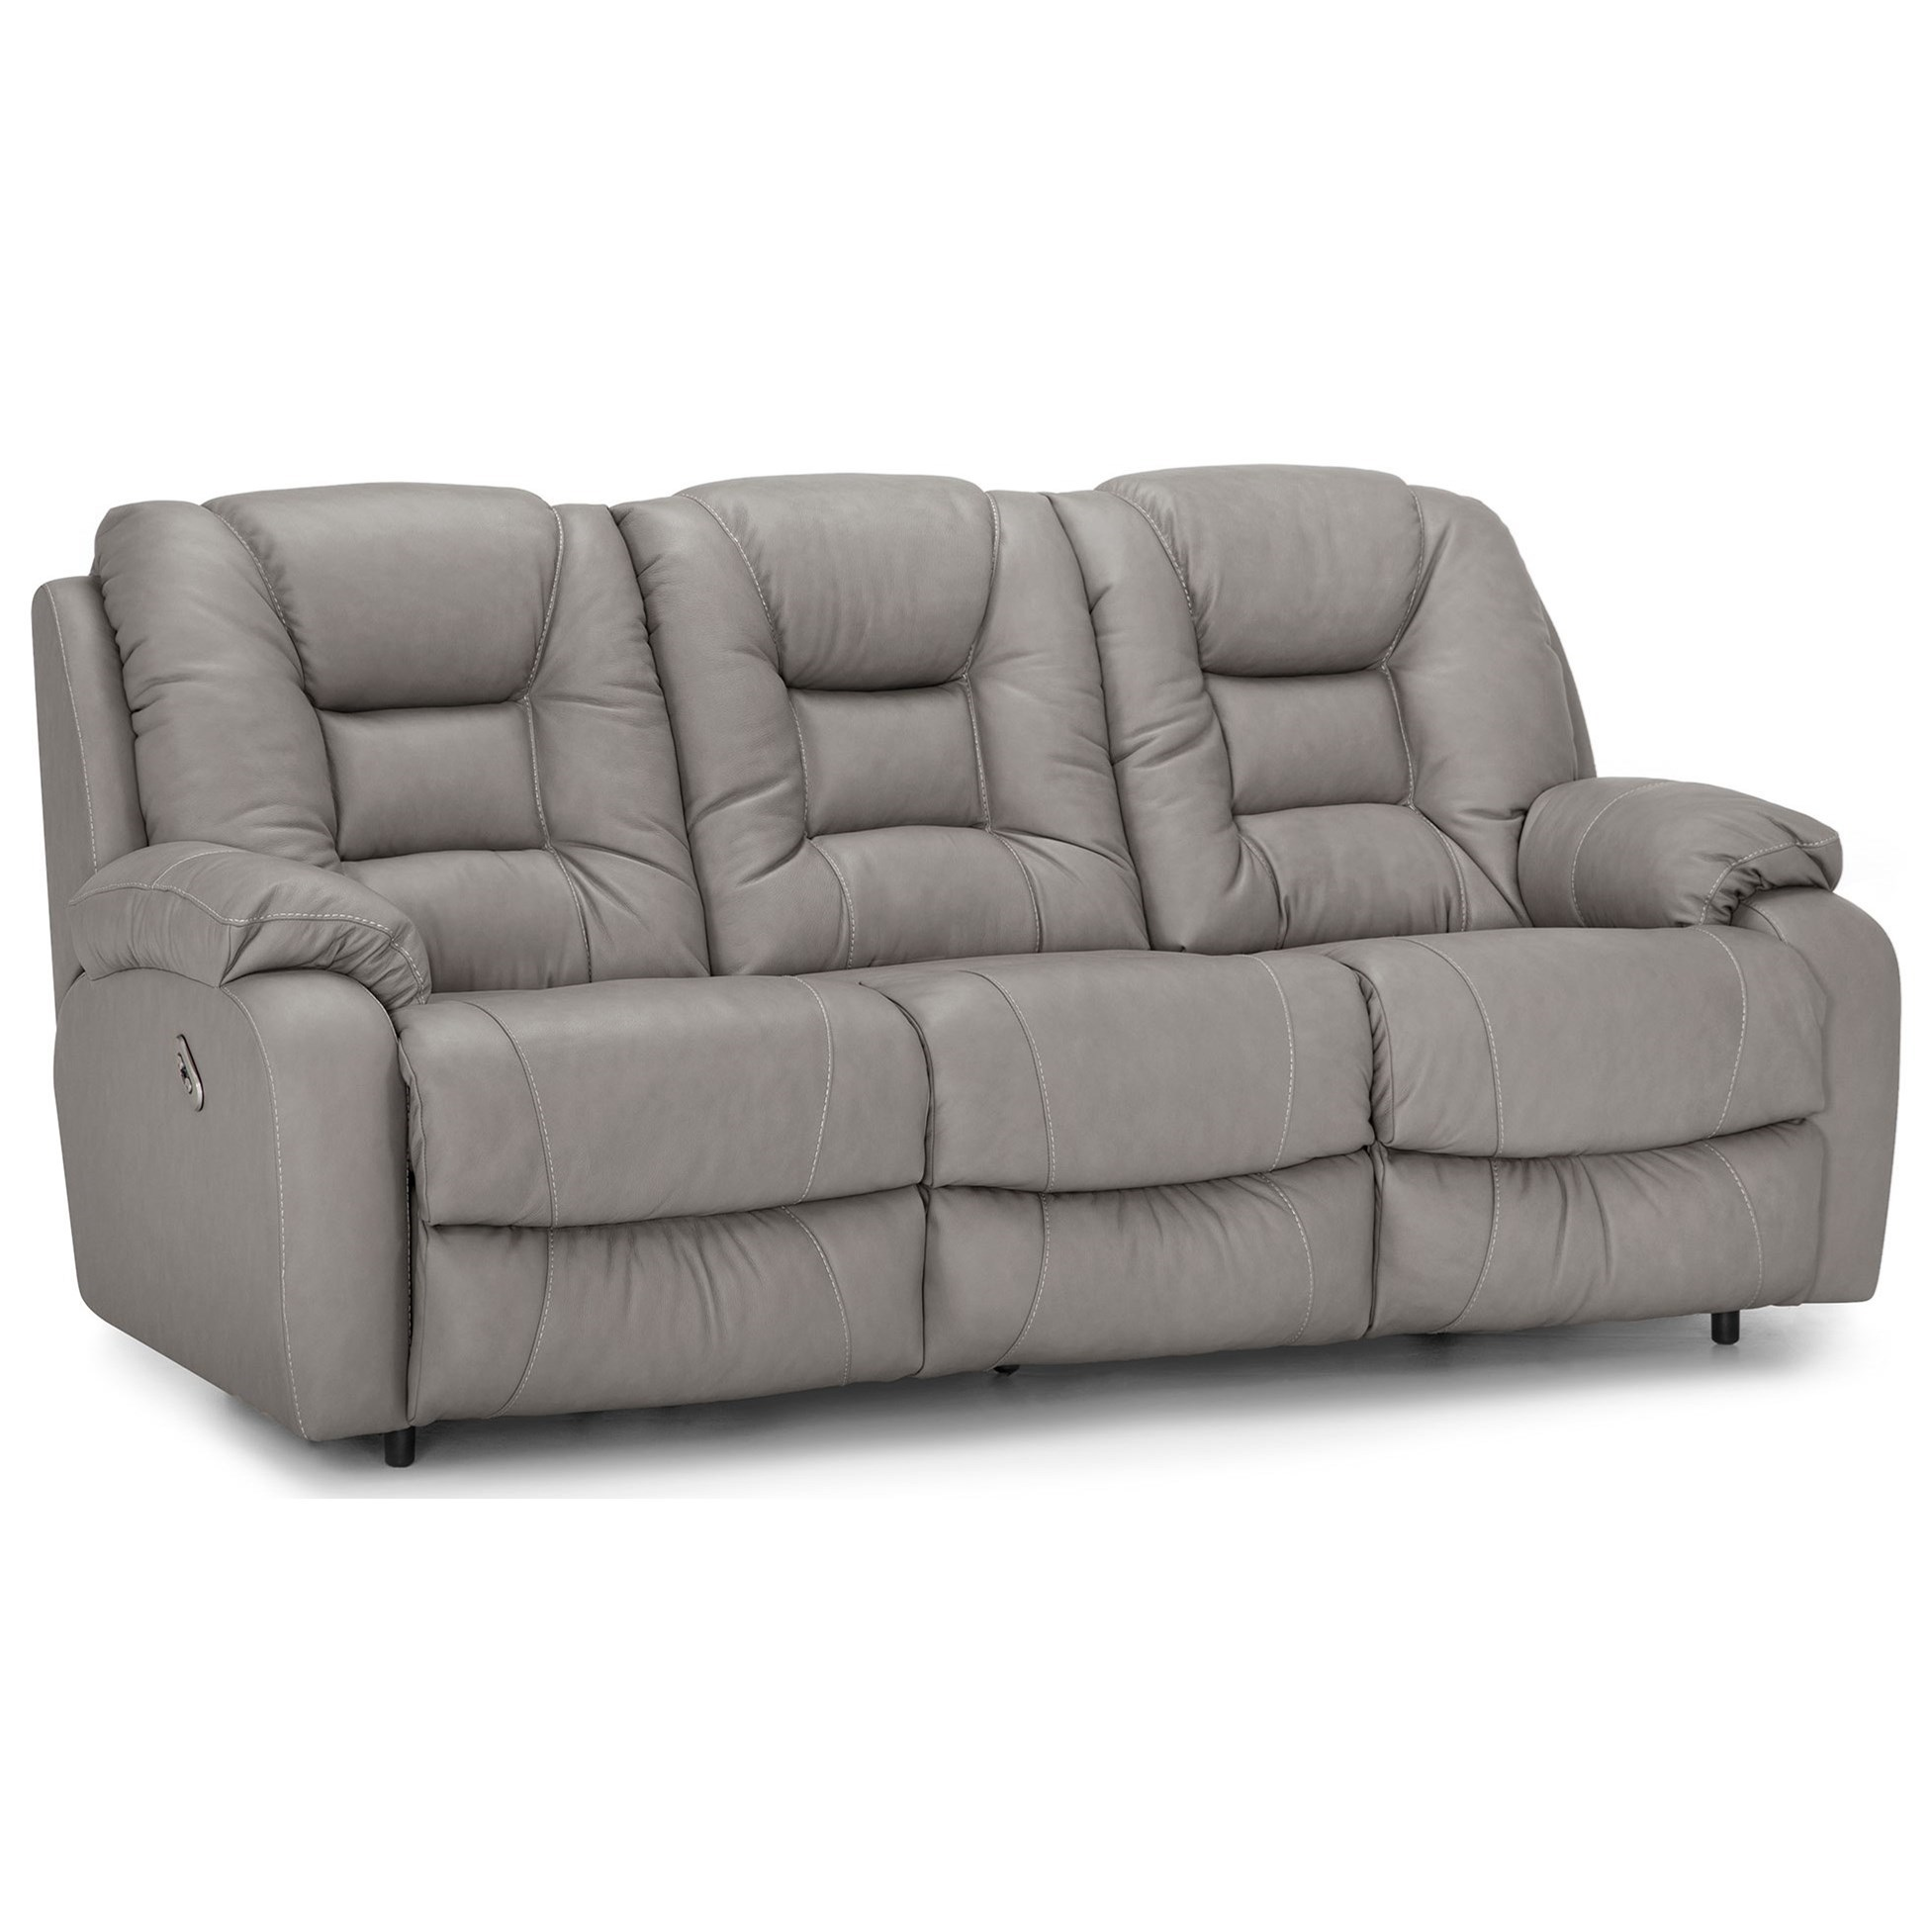 794 Power Reclining Sofa by Franklin at Wilcox Furniture